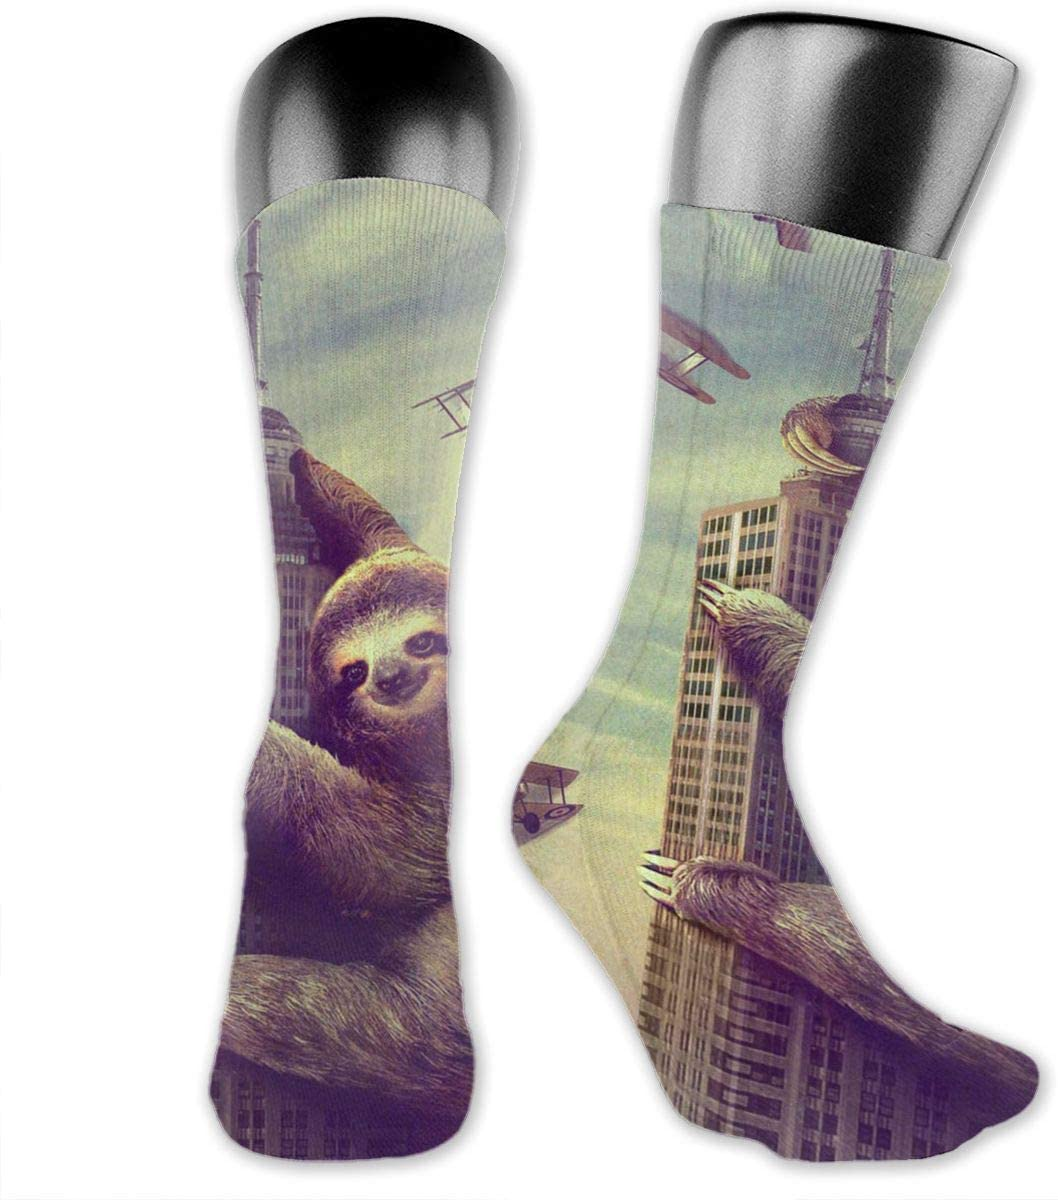 OLGCZM Funny Sloth Building Men Womens Thin High Ankle Casual Socks Fit Outdoor Hiking Trail